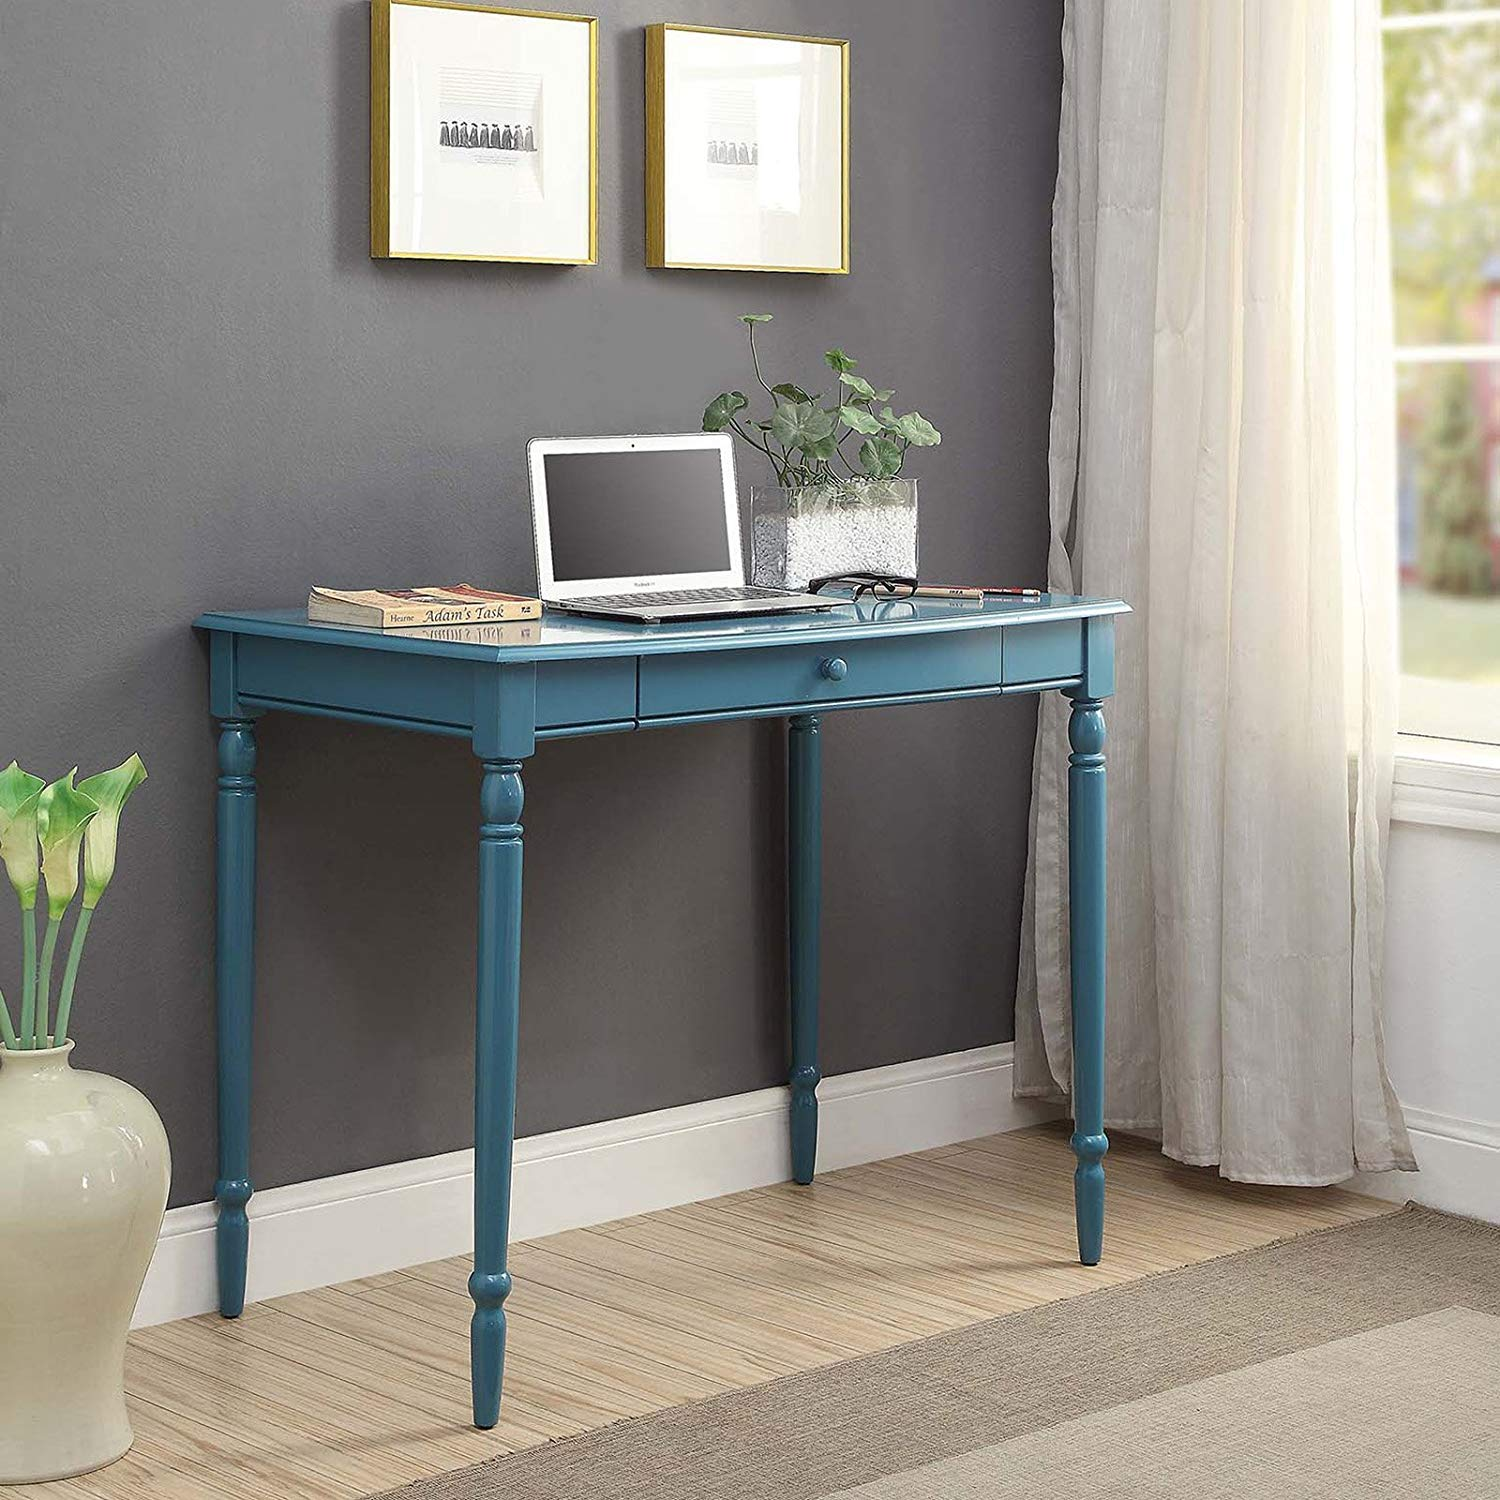 Blue Country Writing Desk, Office Furniture, Home, Keyboard Tray, Spacious Workspace, Solid Hardwoods, Wood, Indoor, Bundle with Our Expert Guide with Tips for Home Arrangement